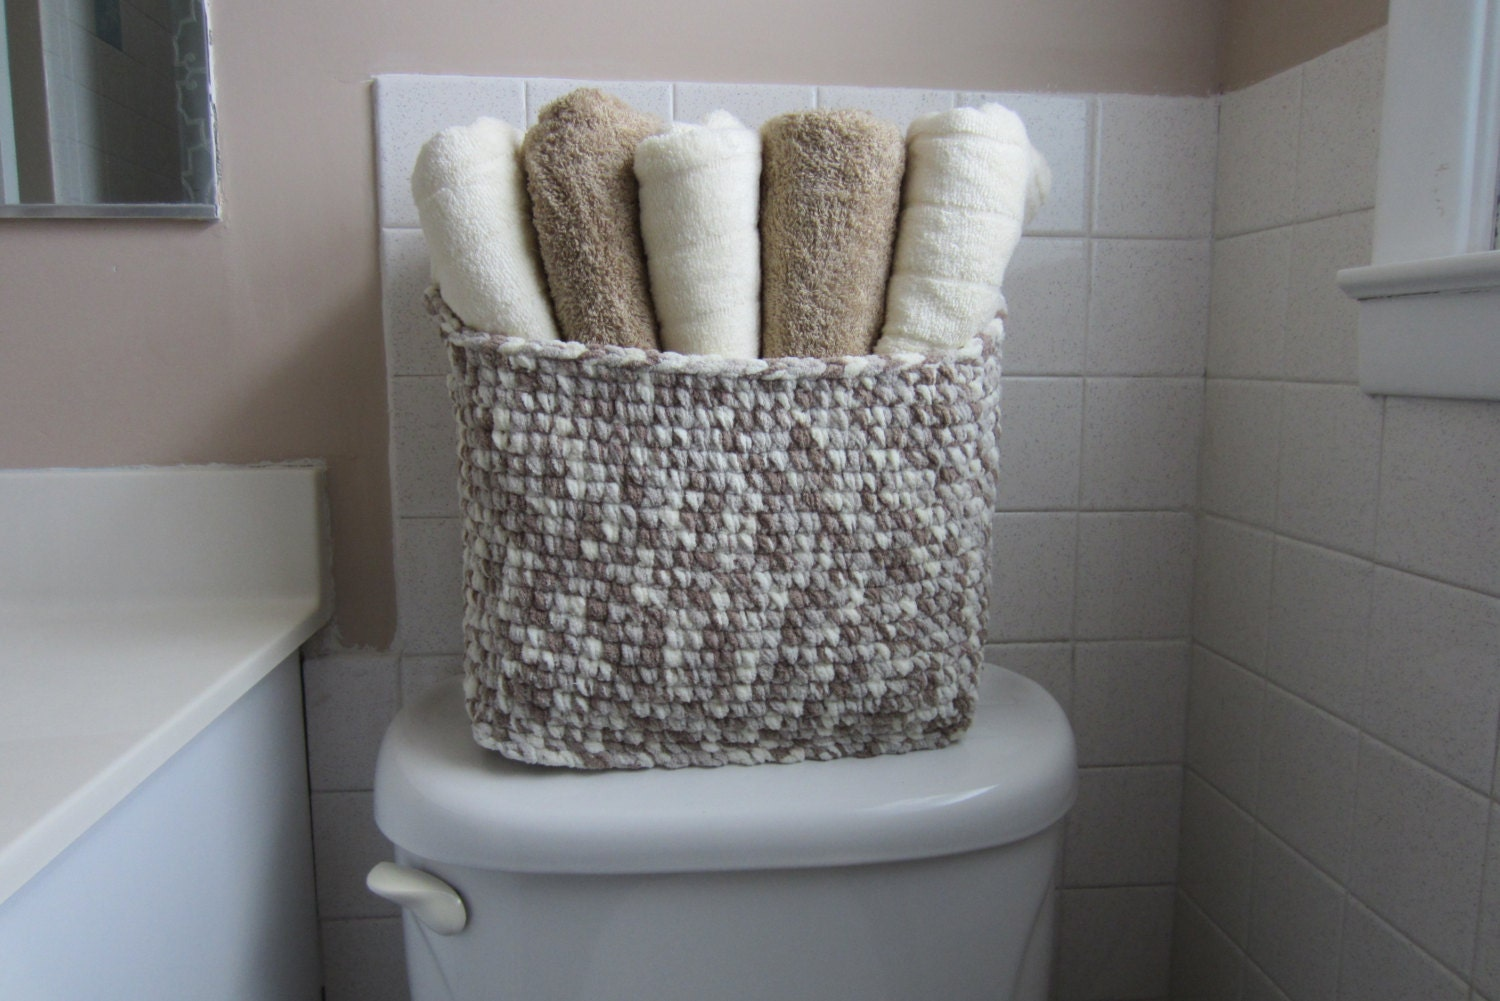 Basket For Towels In Bathroom